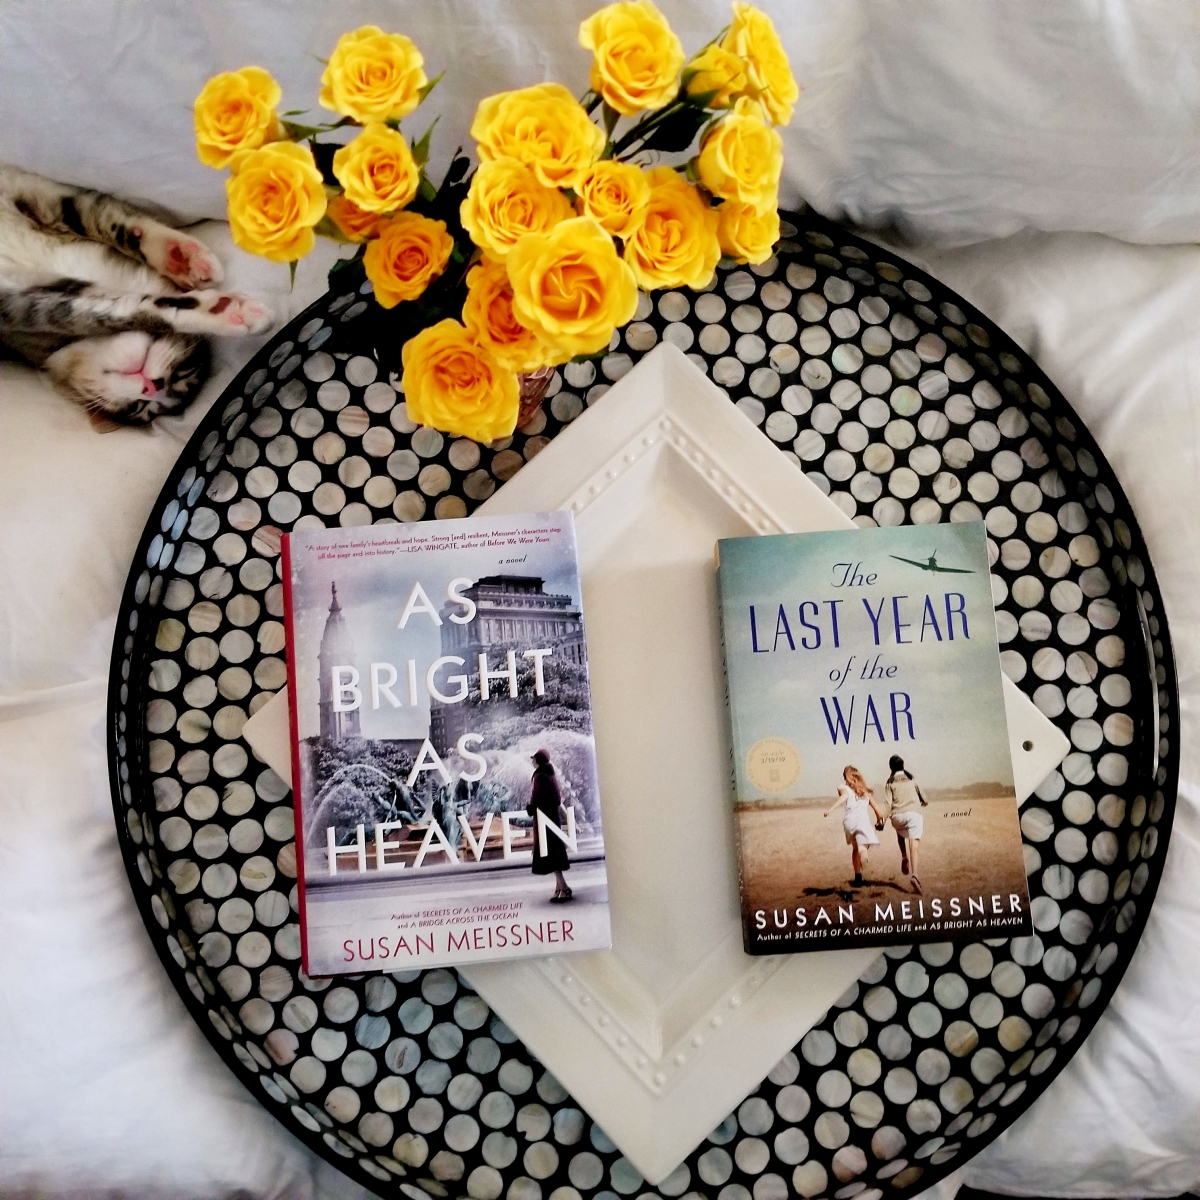 The Last Year of the War by Susan Meissner #bookreview #tarheelreader #thrthelastyear @susanmeissner @berkleypub #thelastyearofthewar #blogtour #bookgiveaway